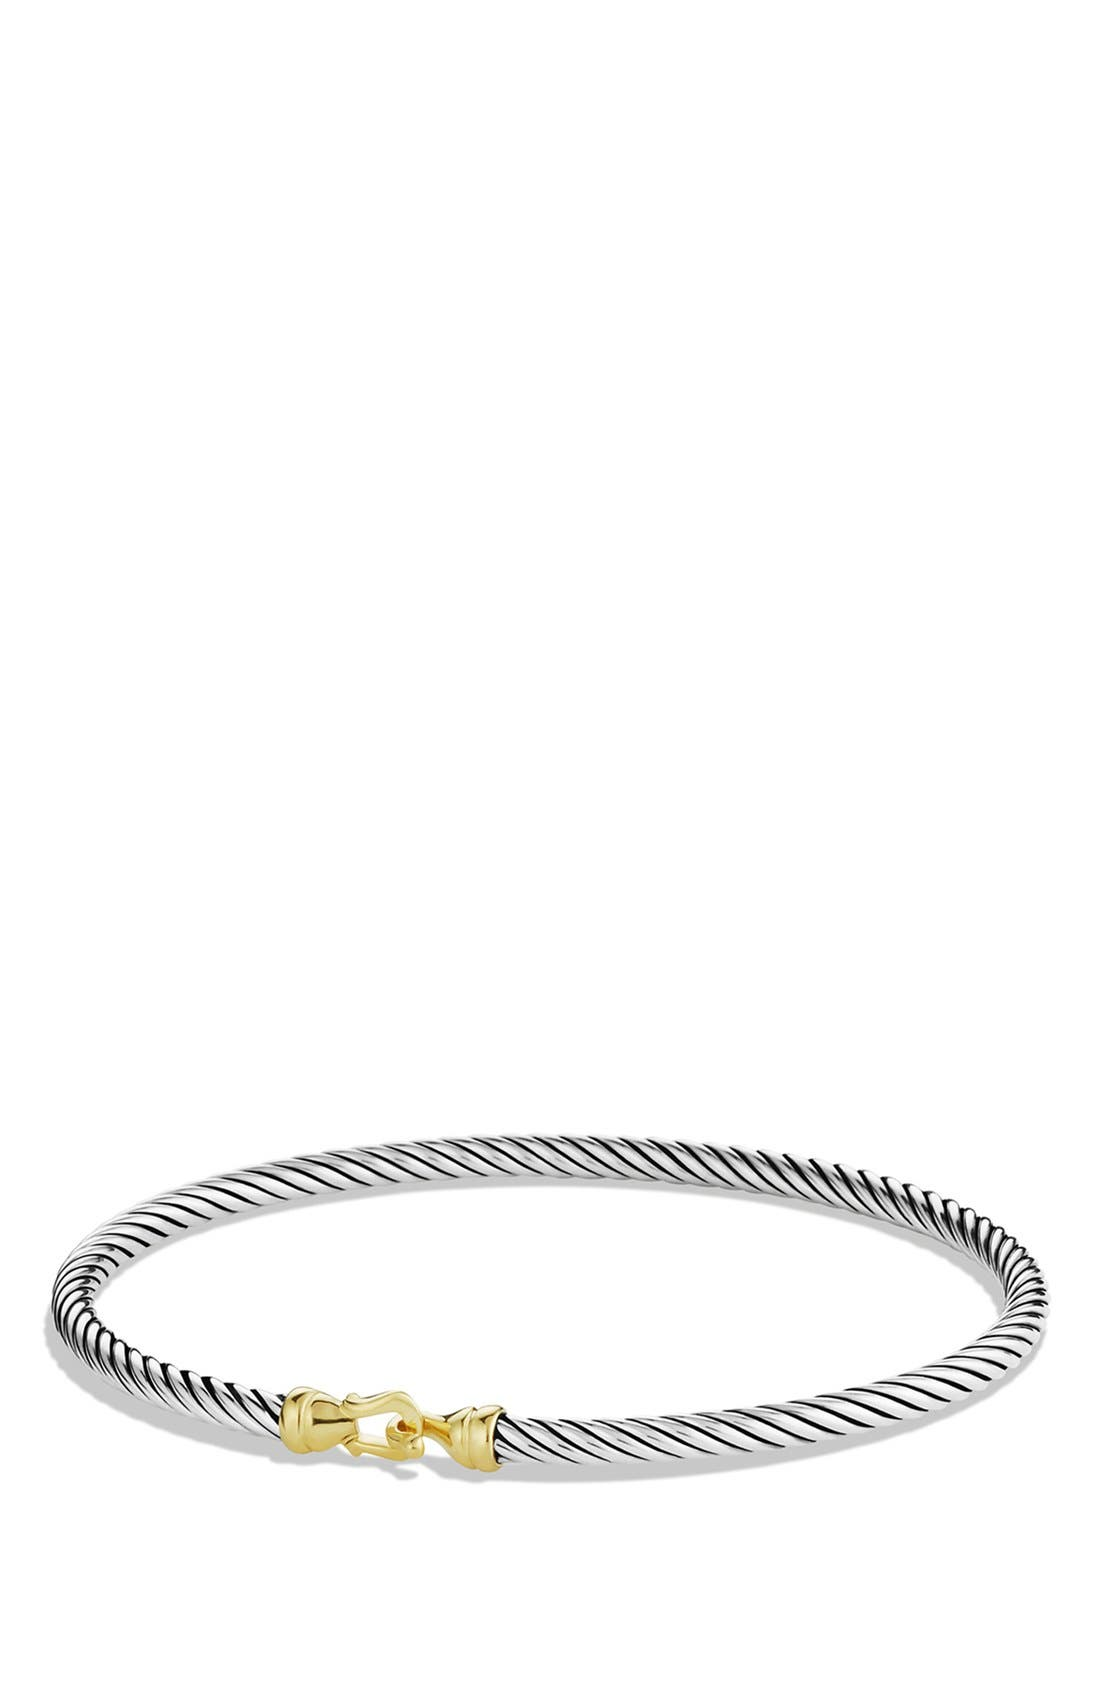 David Yurman 'Cable Buckle' Two-Tone Bracelet